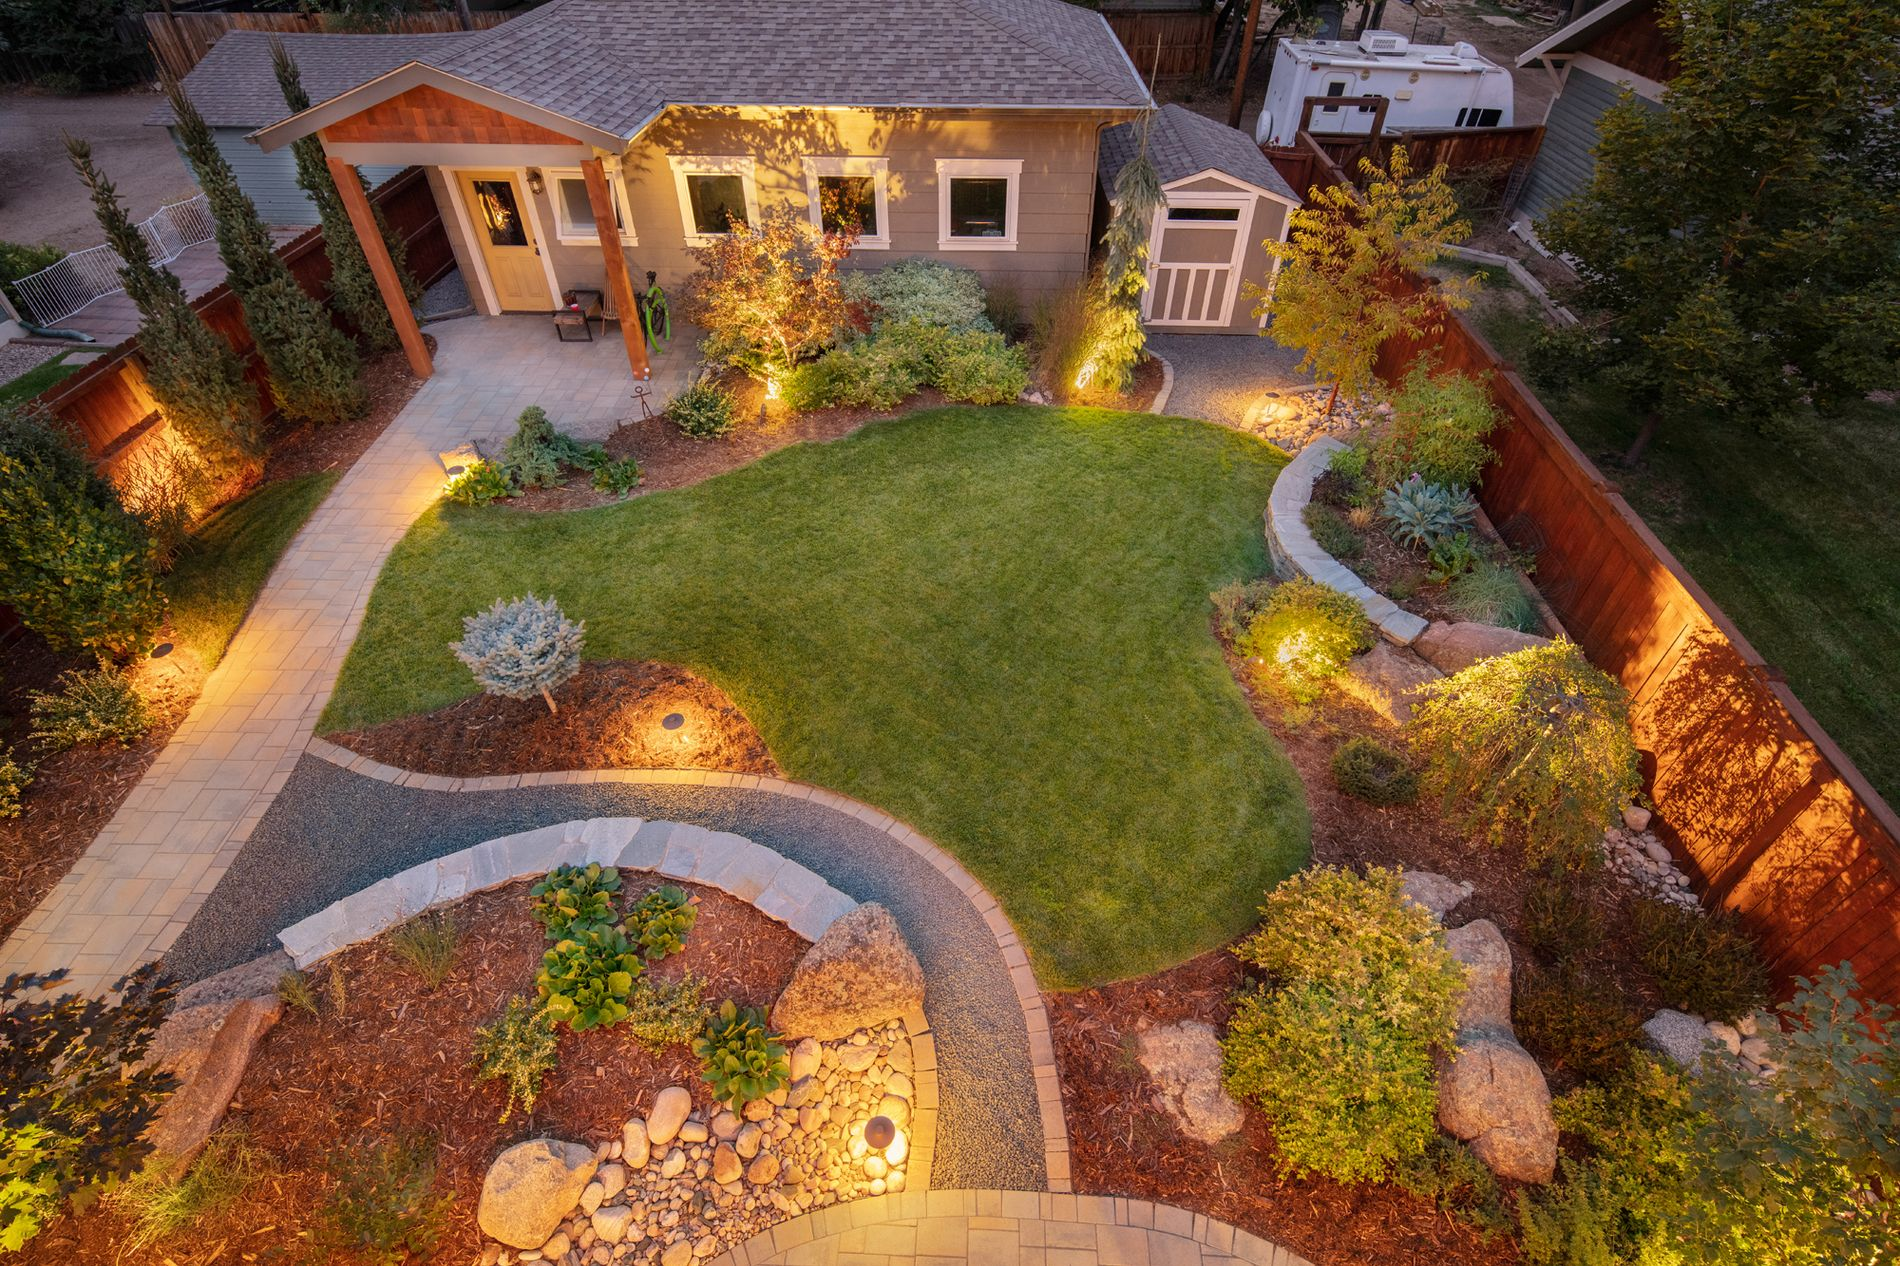 Landscape lighting provides evening viewing and safety